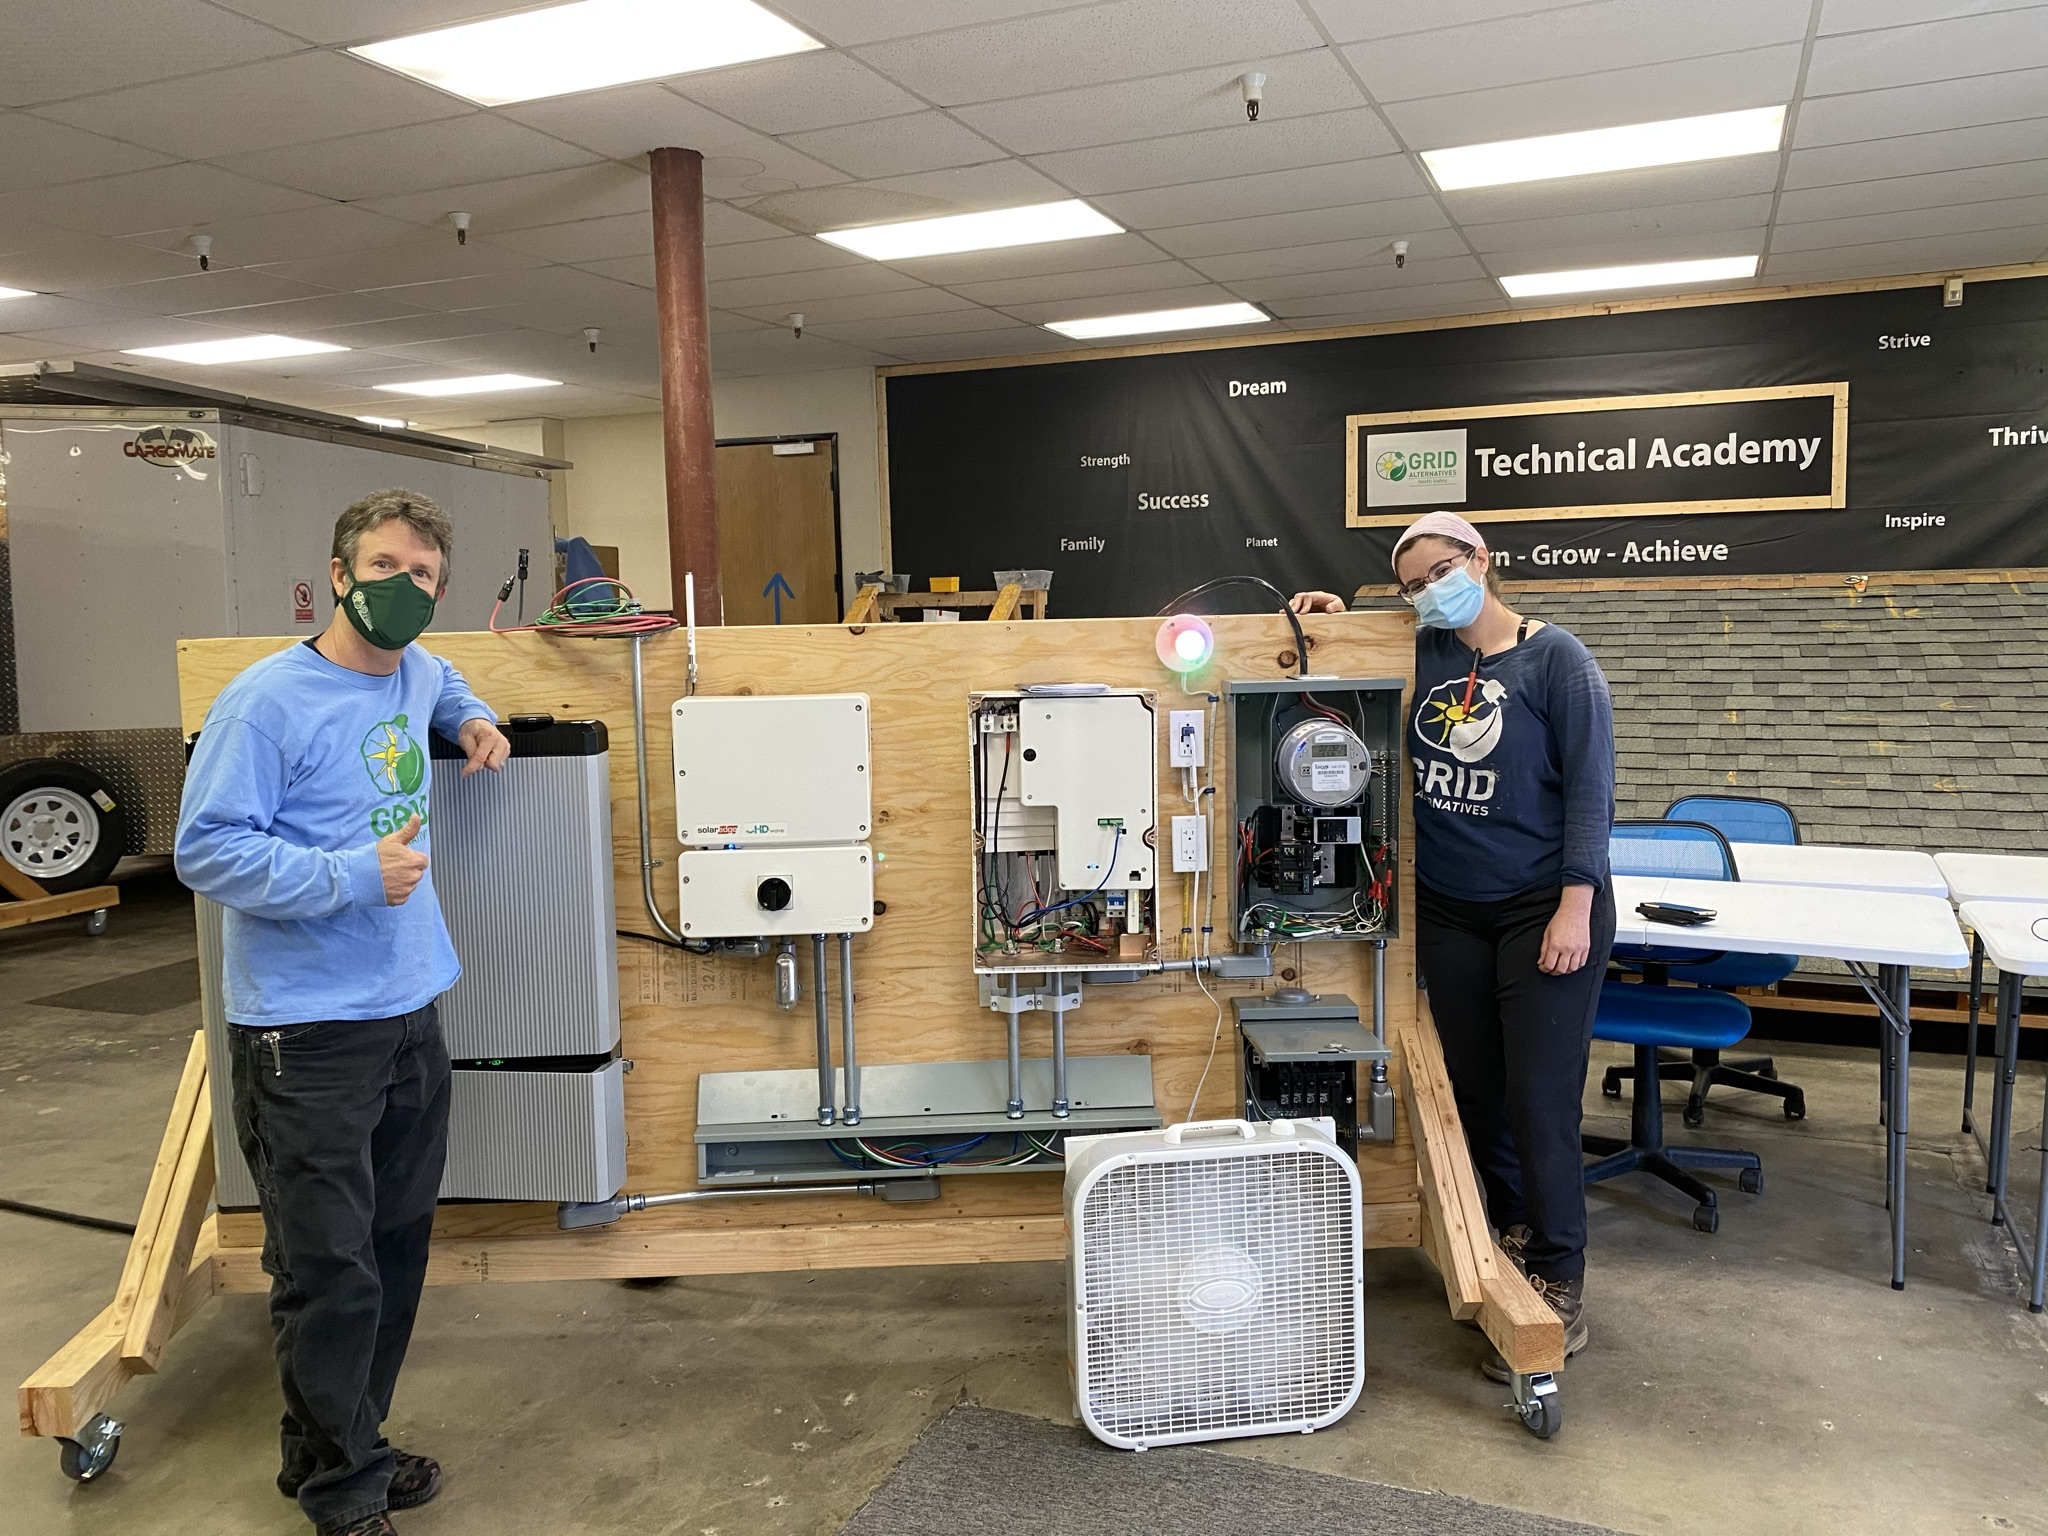 Steve and Monica show off GRID North Valley's new battery storage and EV charger training wall in our Technical Academy.